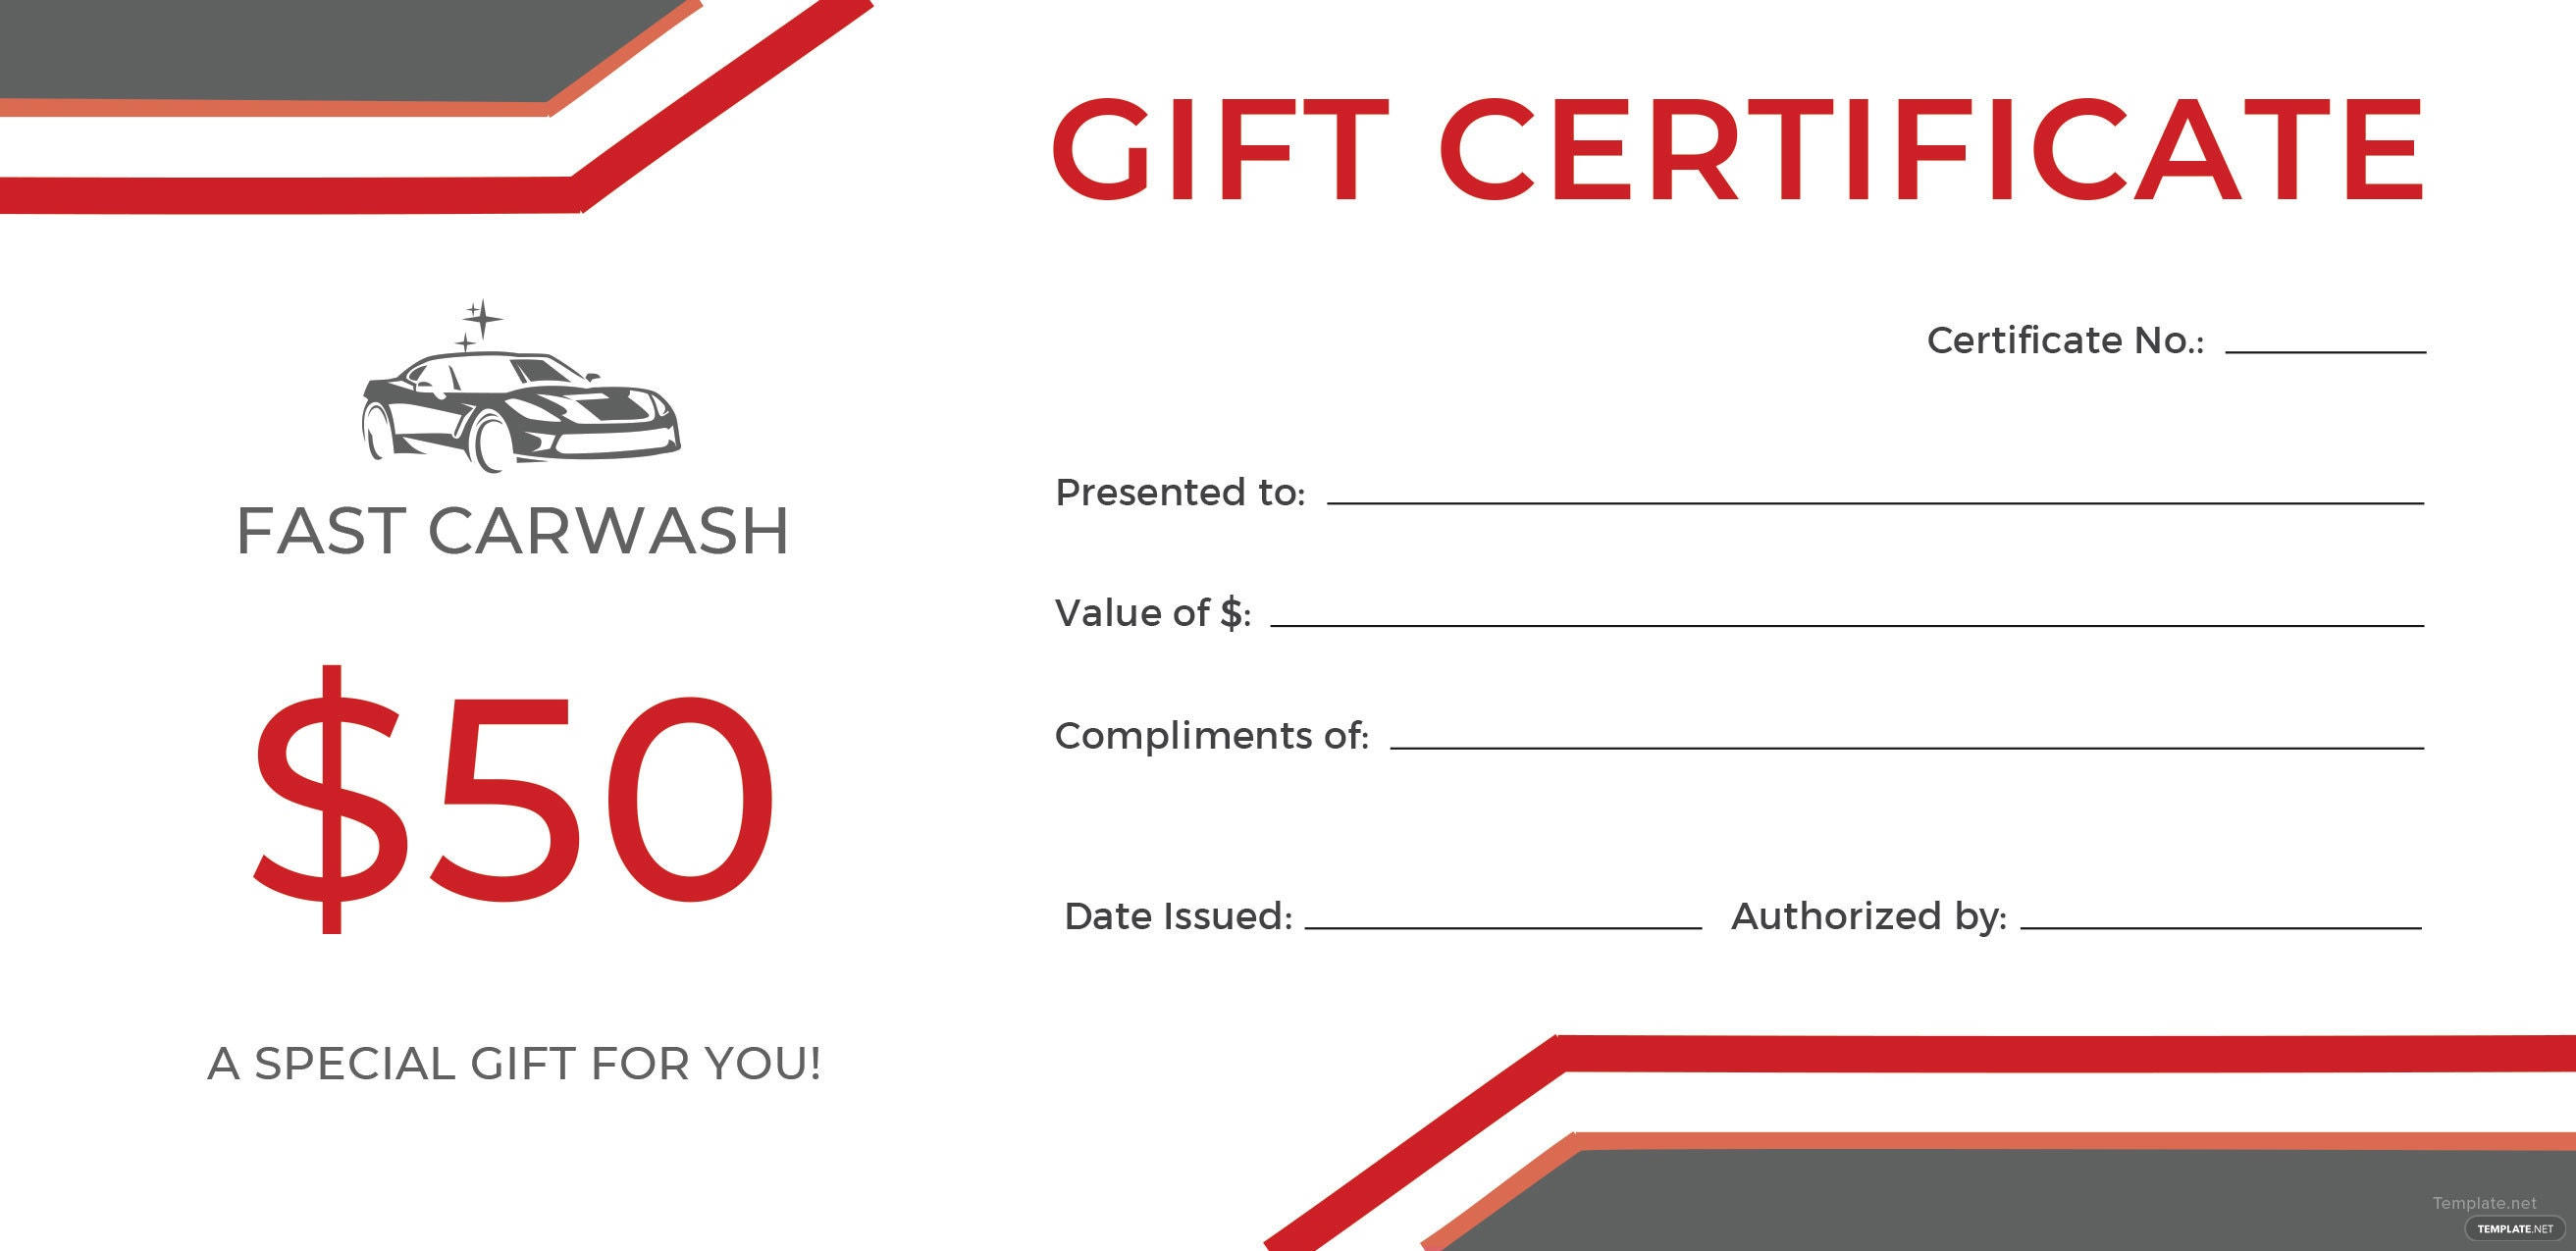 microsoft word gift certificate template for mac contests to win trips